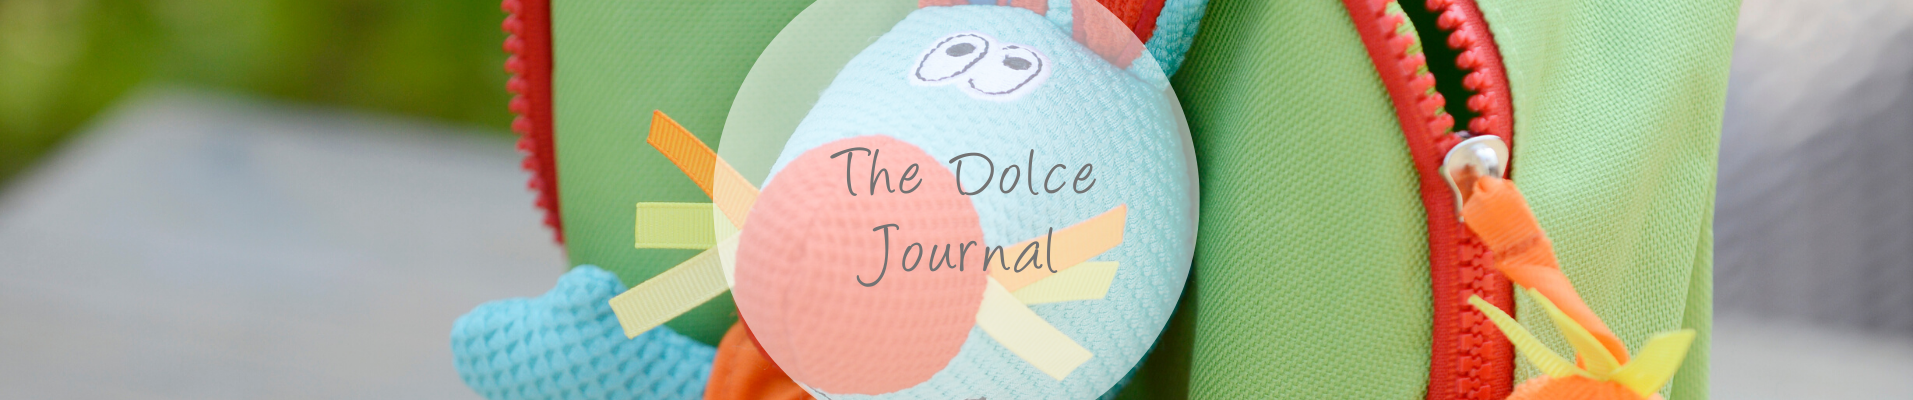 The Dolce Journal blog